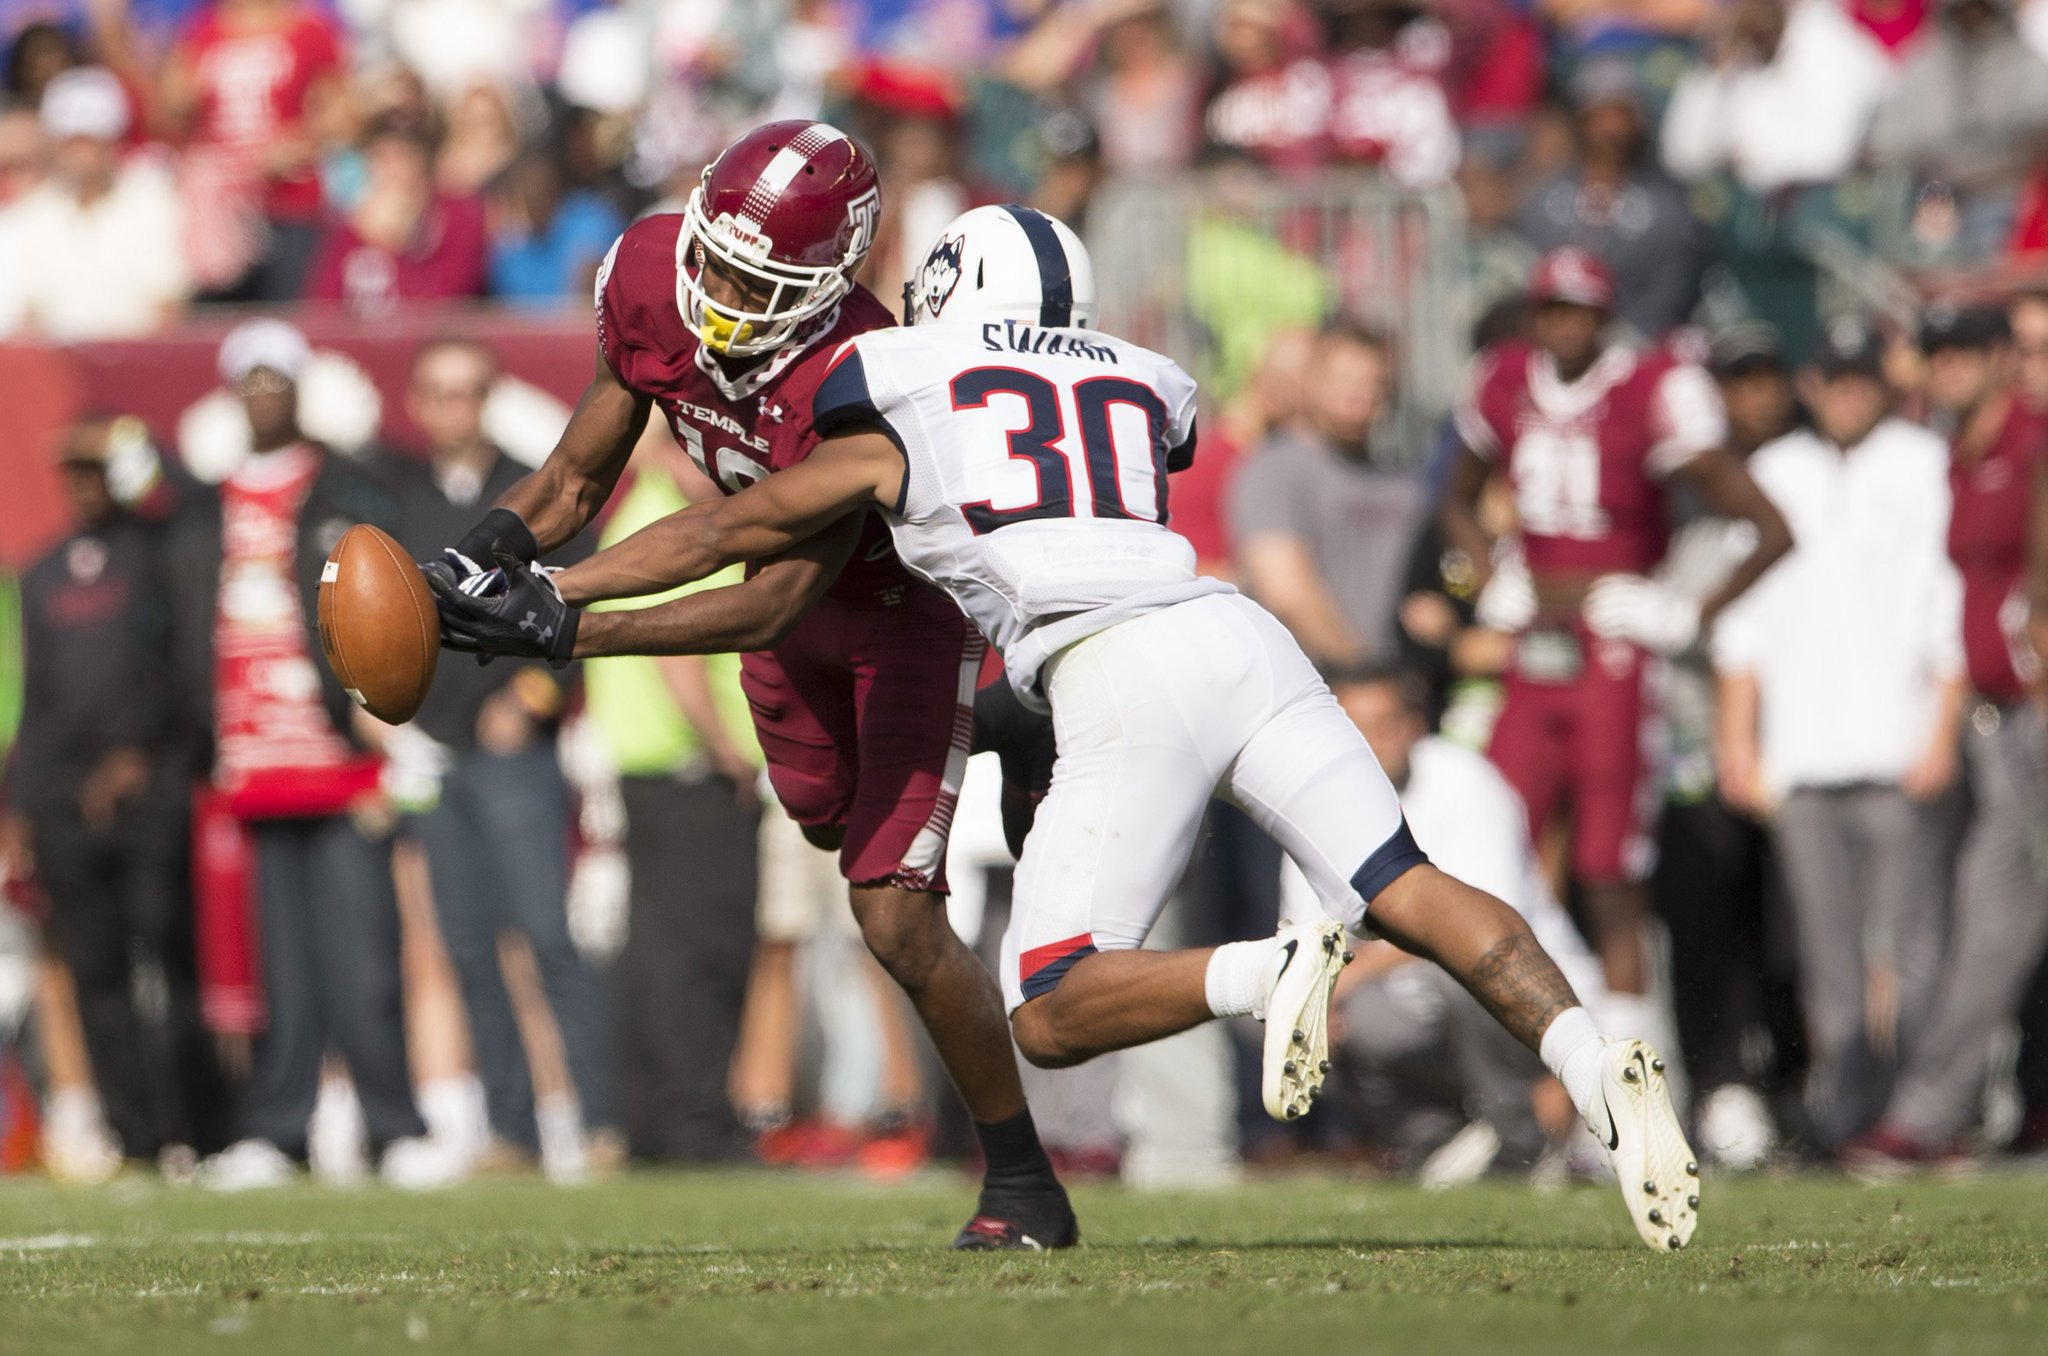 Can @Temple_FB save its season, get bowl eligible after suffering ugly fourth loss? https://t.co/iyJn8vhTfI https://t.co/fr7NTZVcDQ